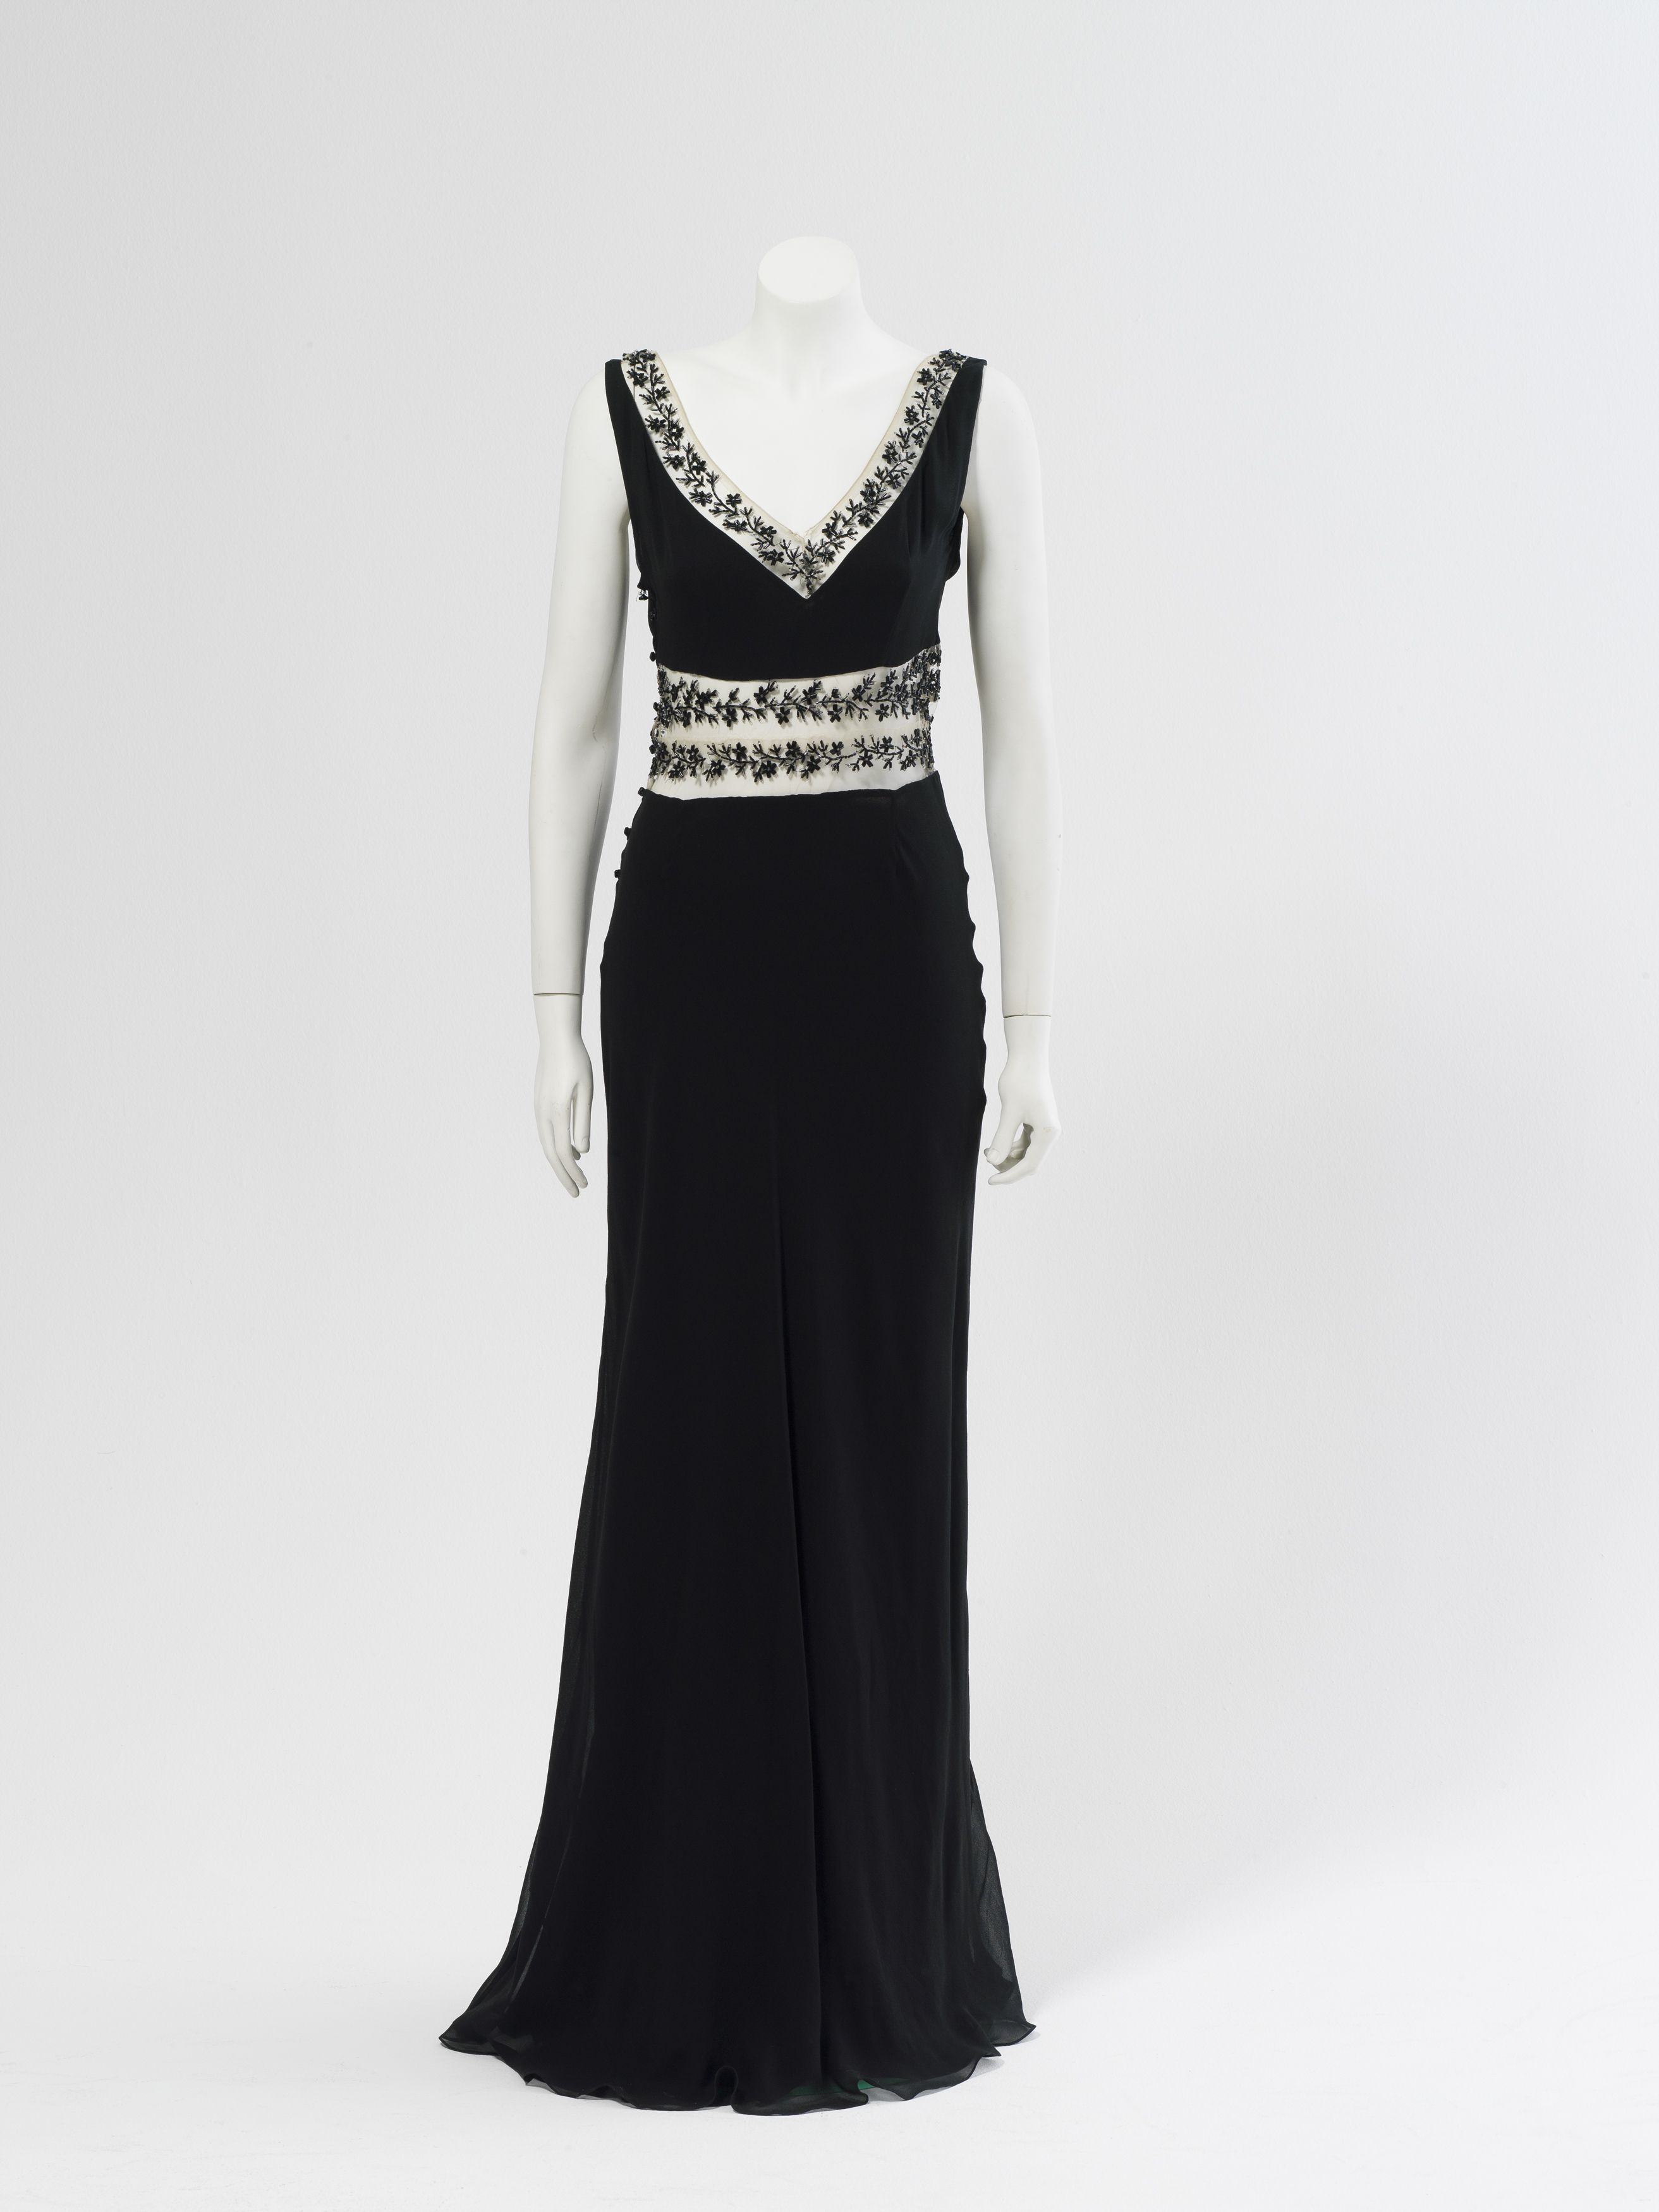 Evening dress by Collette Dinnigan MAAS Collection